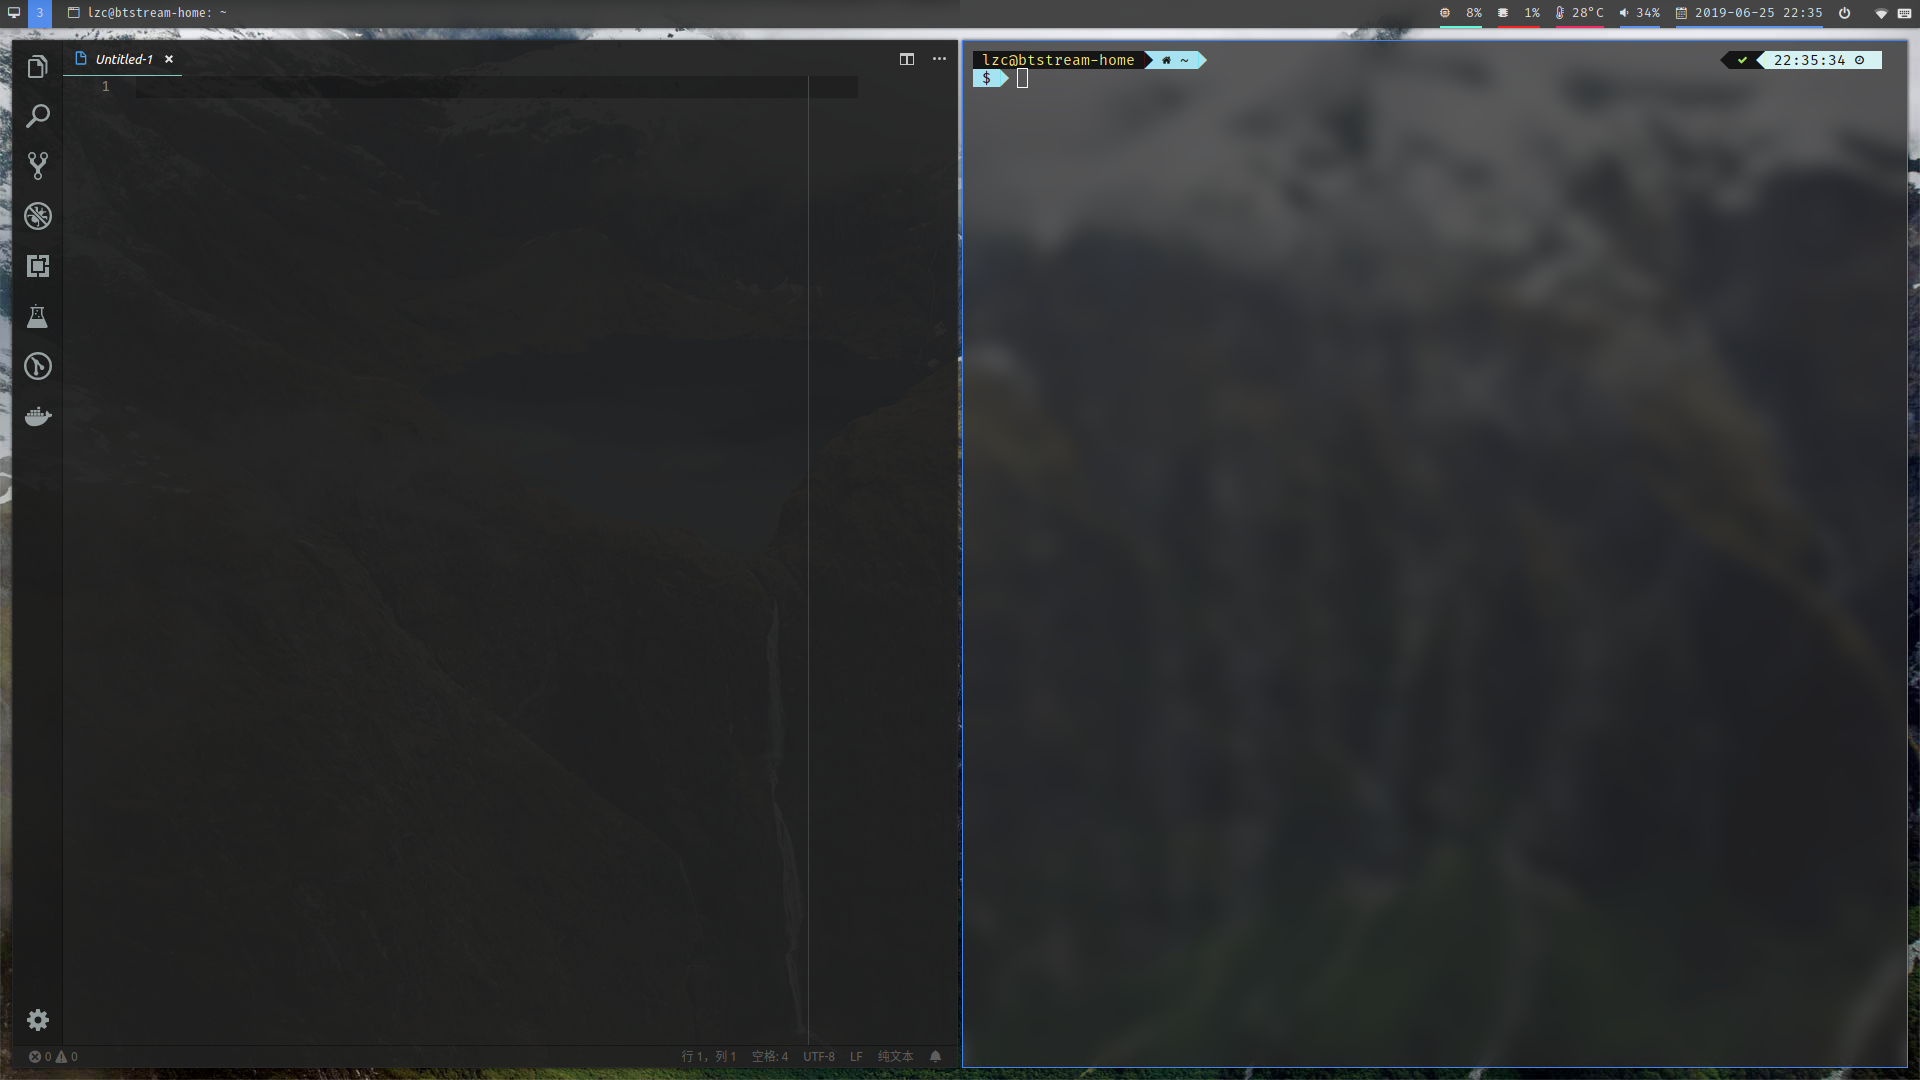 Blur does not work on VSCode with opacity-rule